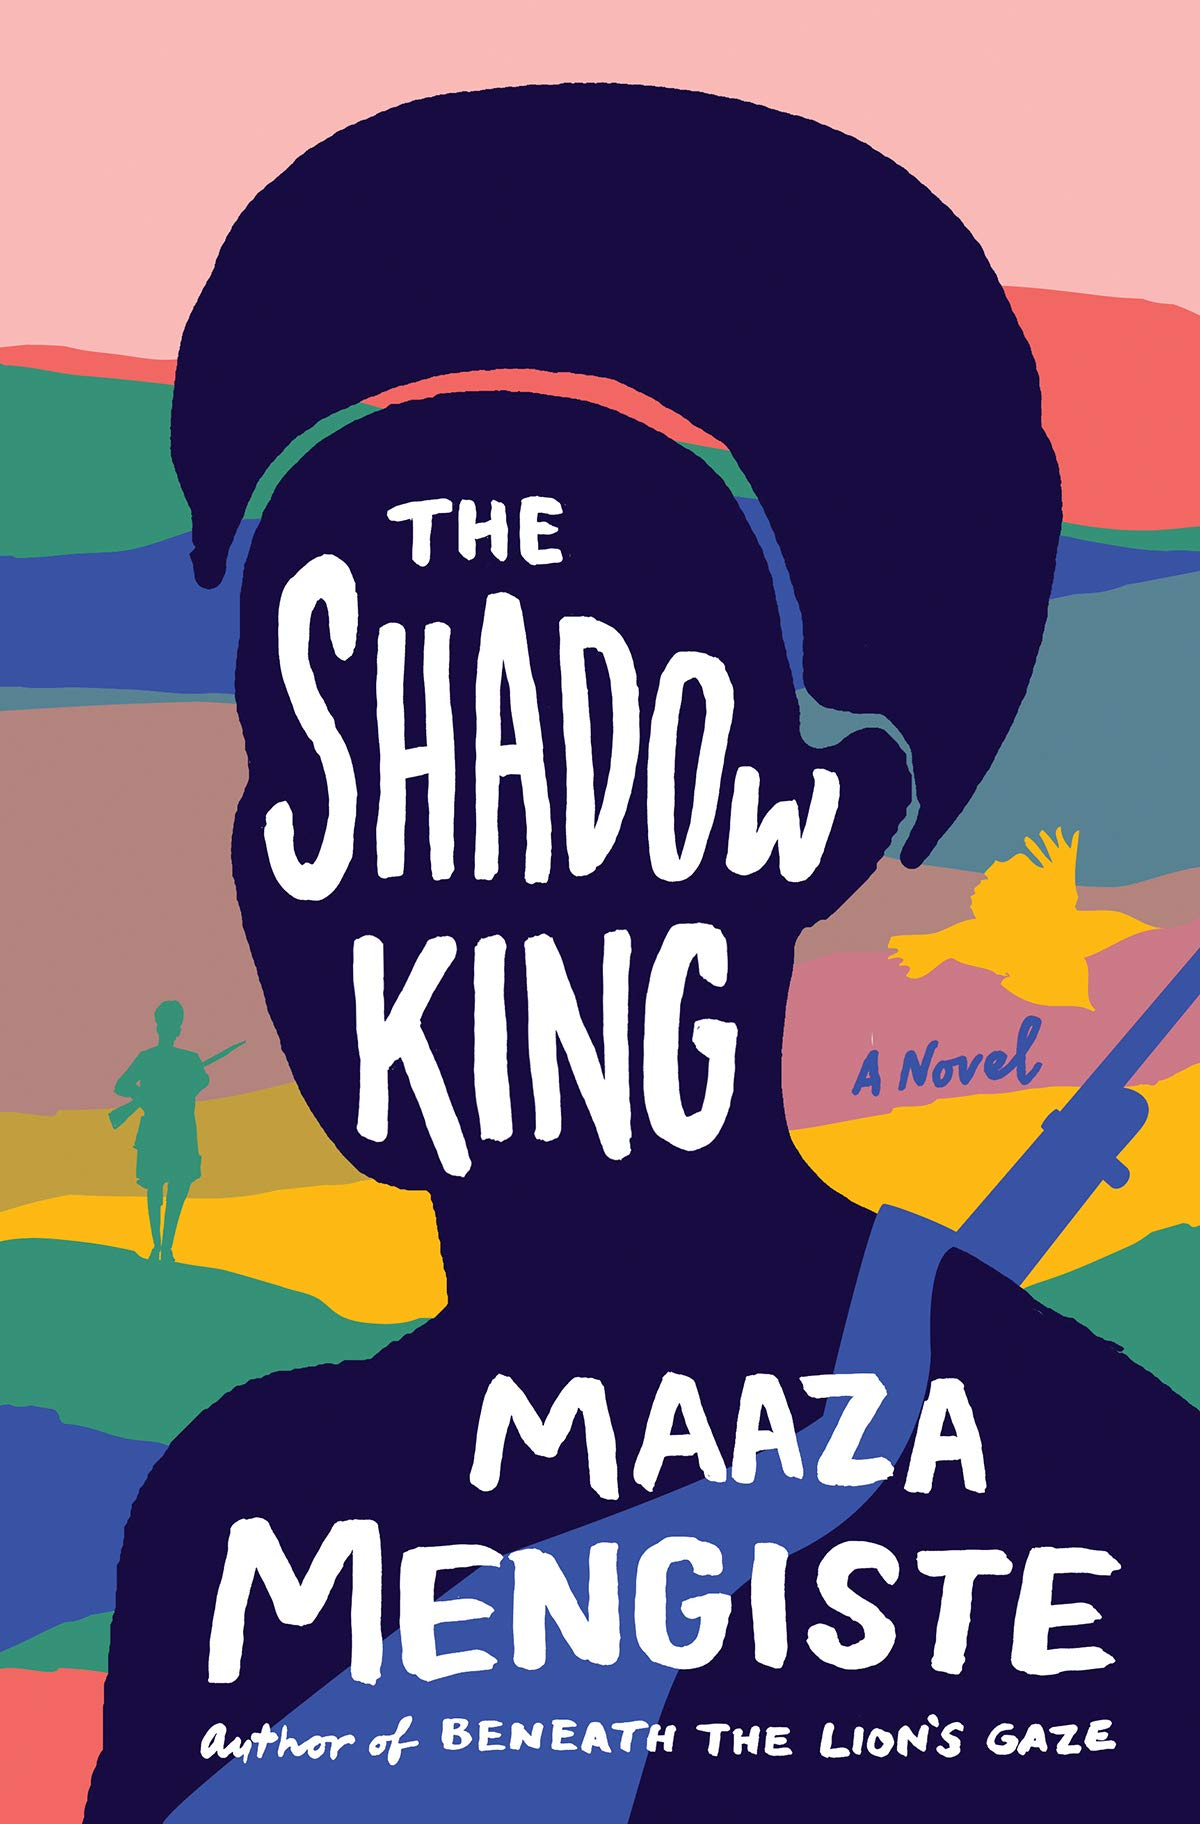 Amazon.com: The Shadow King: A Novel (9780393083569): Mengiste ...